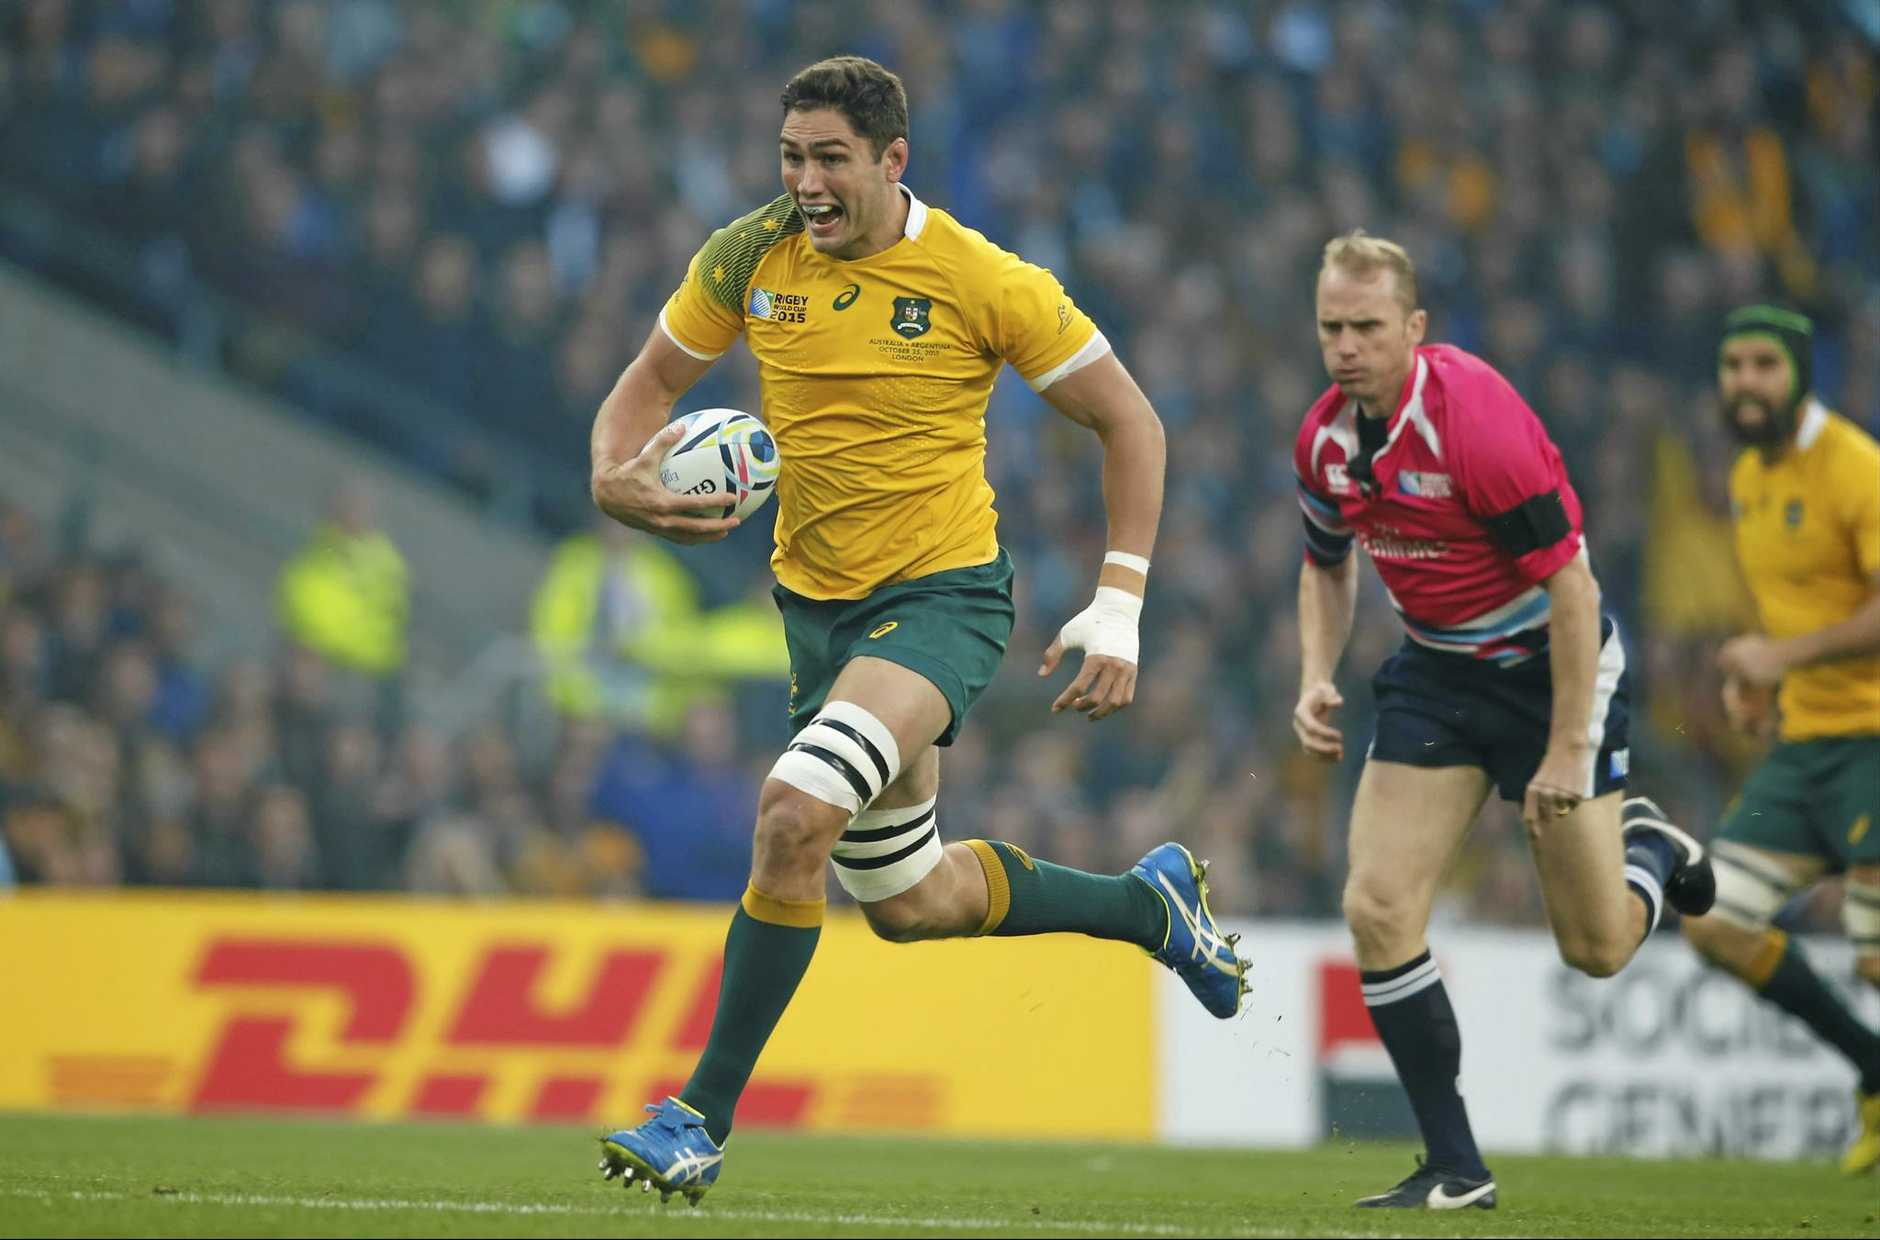 Rob Simmons will line up at lock for the Wallabies against the Pumas.